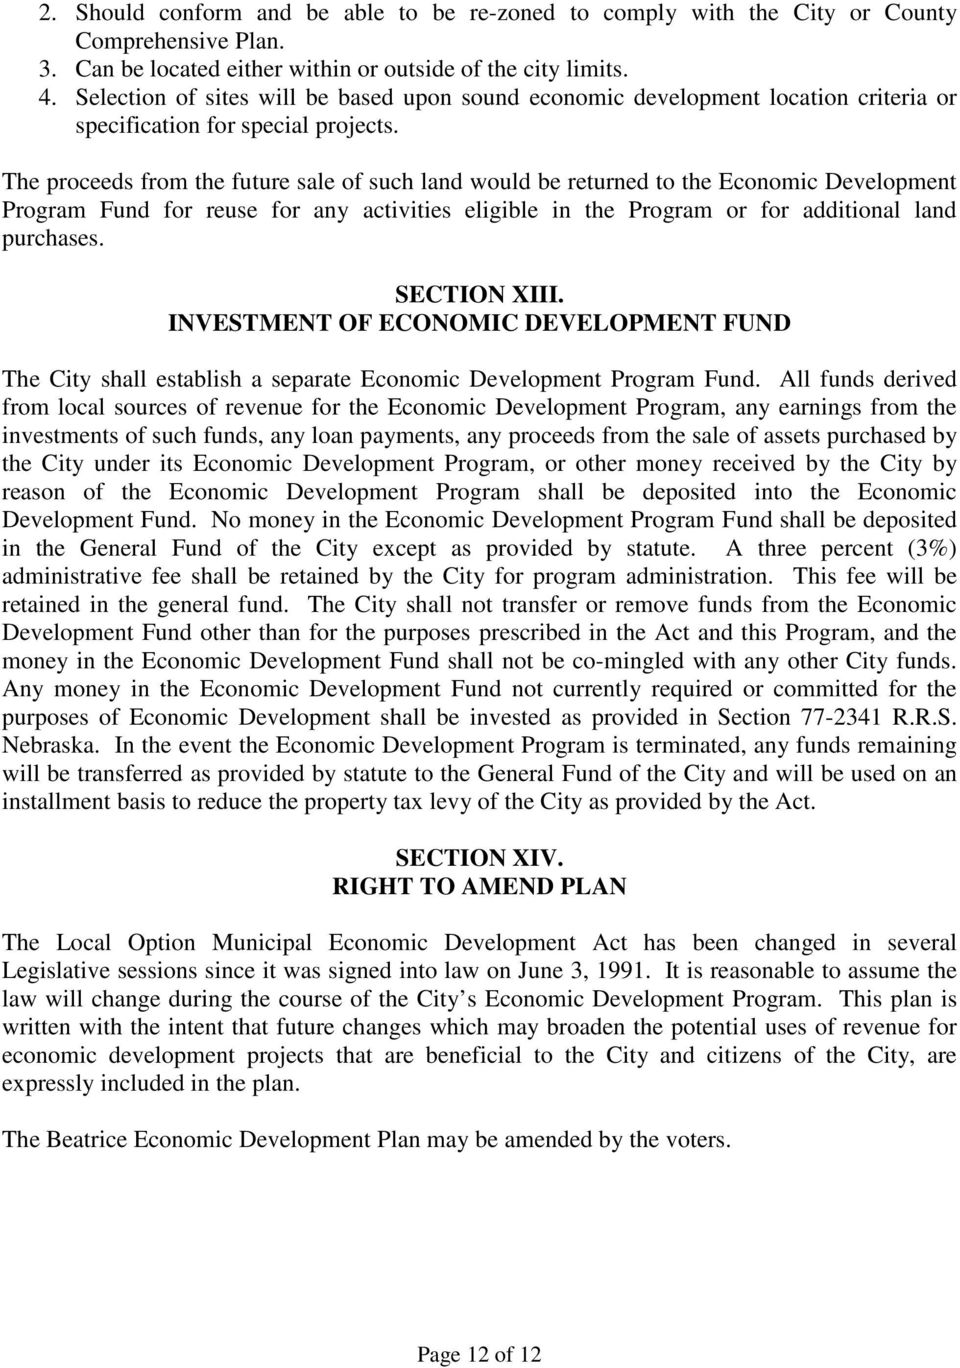 The proceeds from the future sale of such land would be returned to the Economic Development Program Fund for reuse for any activities eligible in the Program or for additional land purchases.